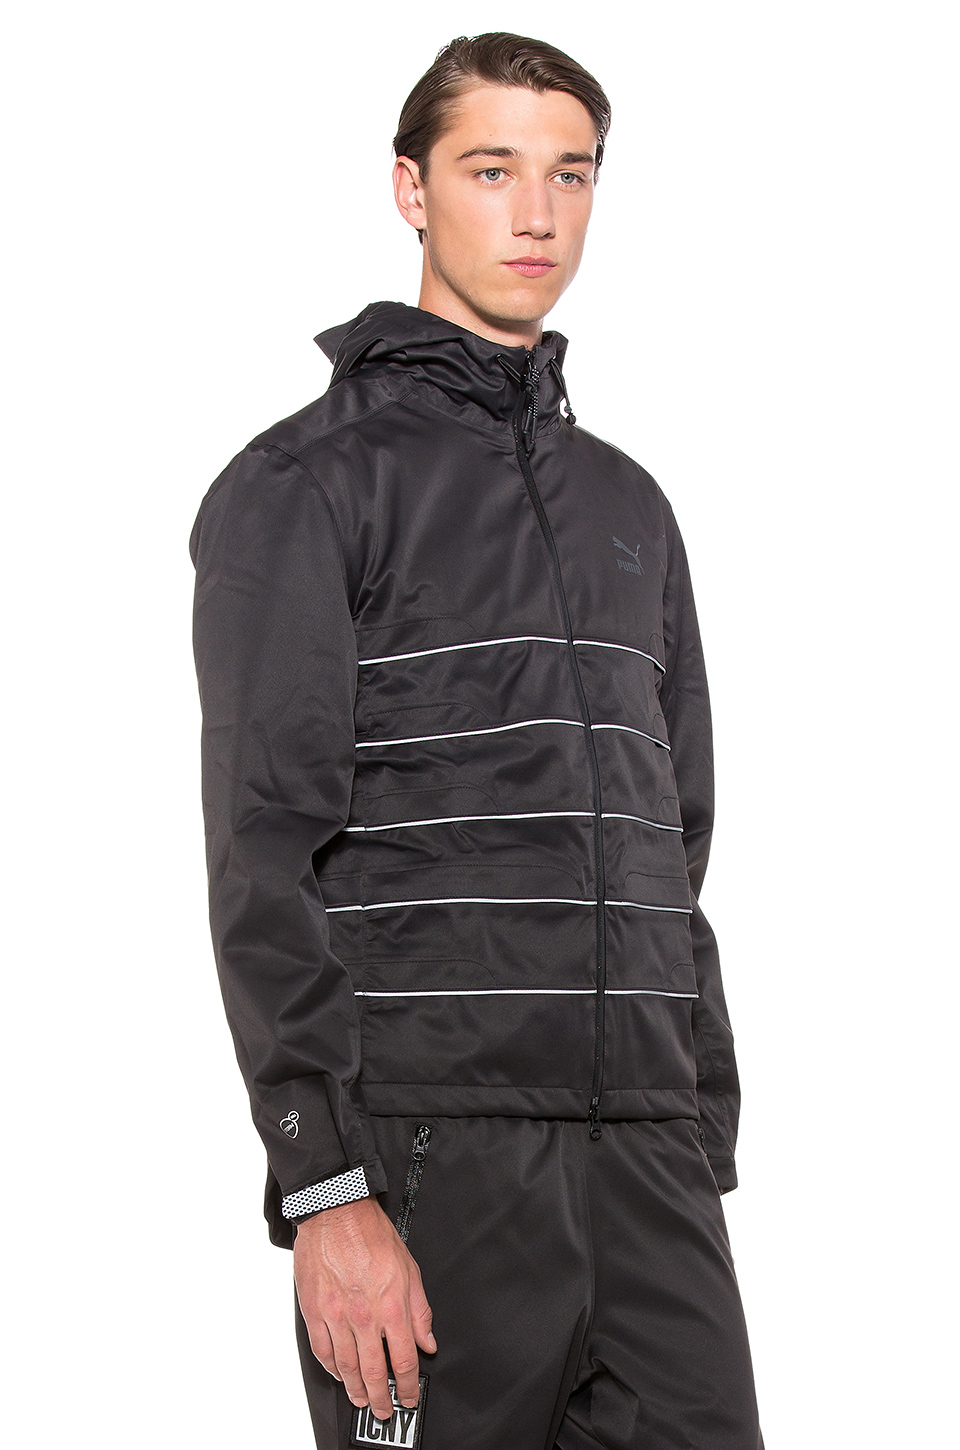 Puma select X Icny Performance Jacket in Black for Men | Lyst